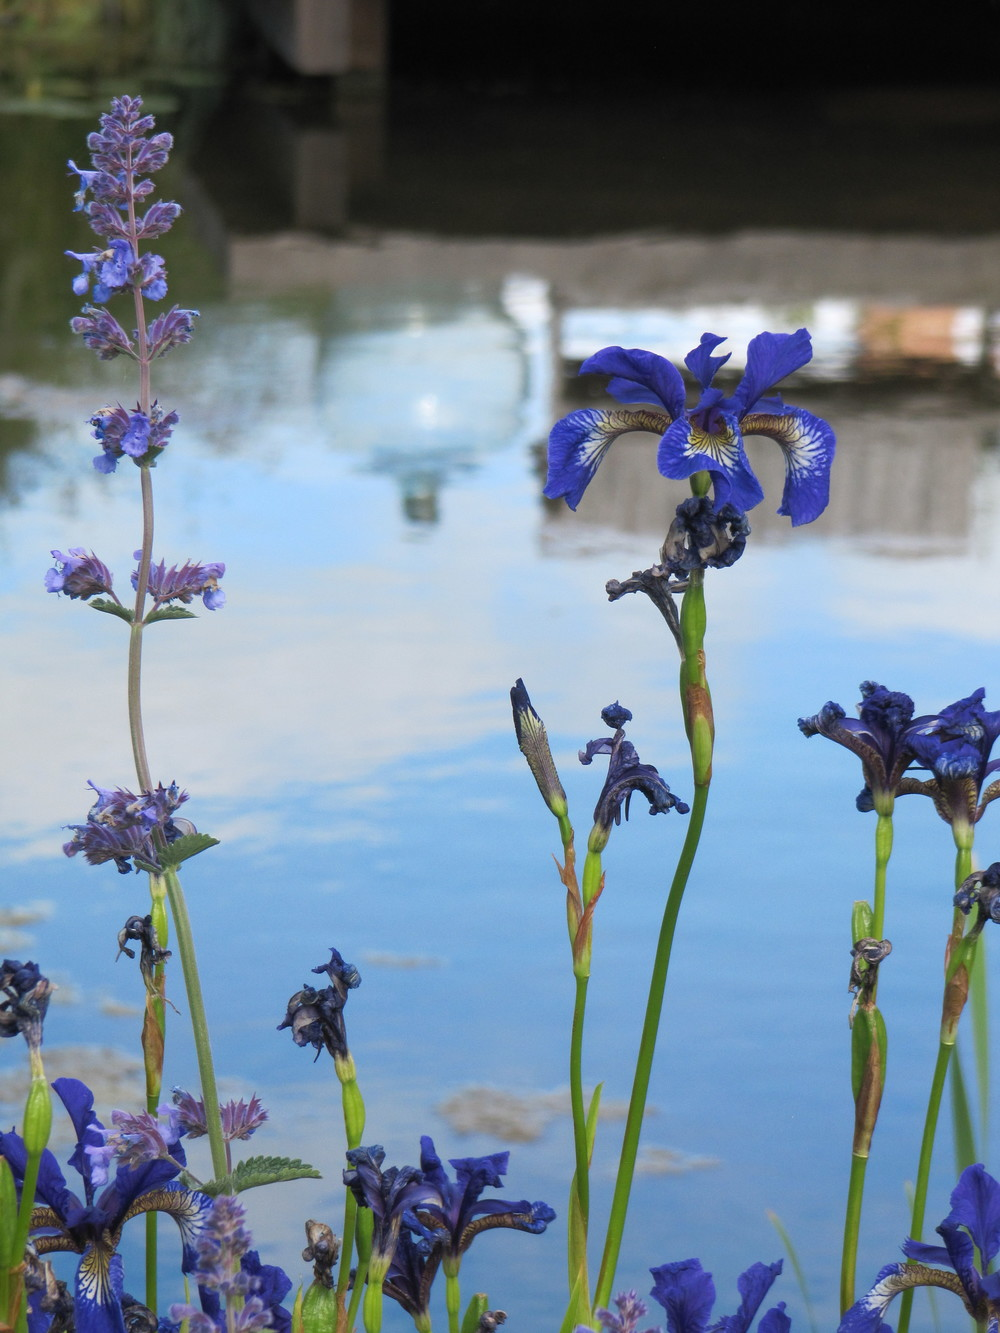 Iris sibirica in the margins of a garden pond